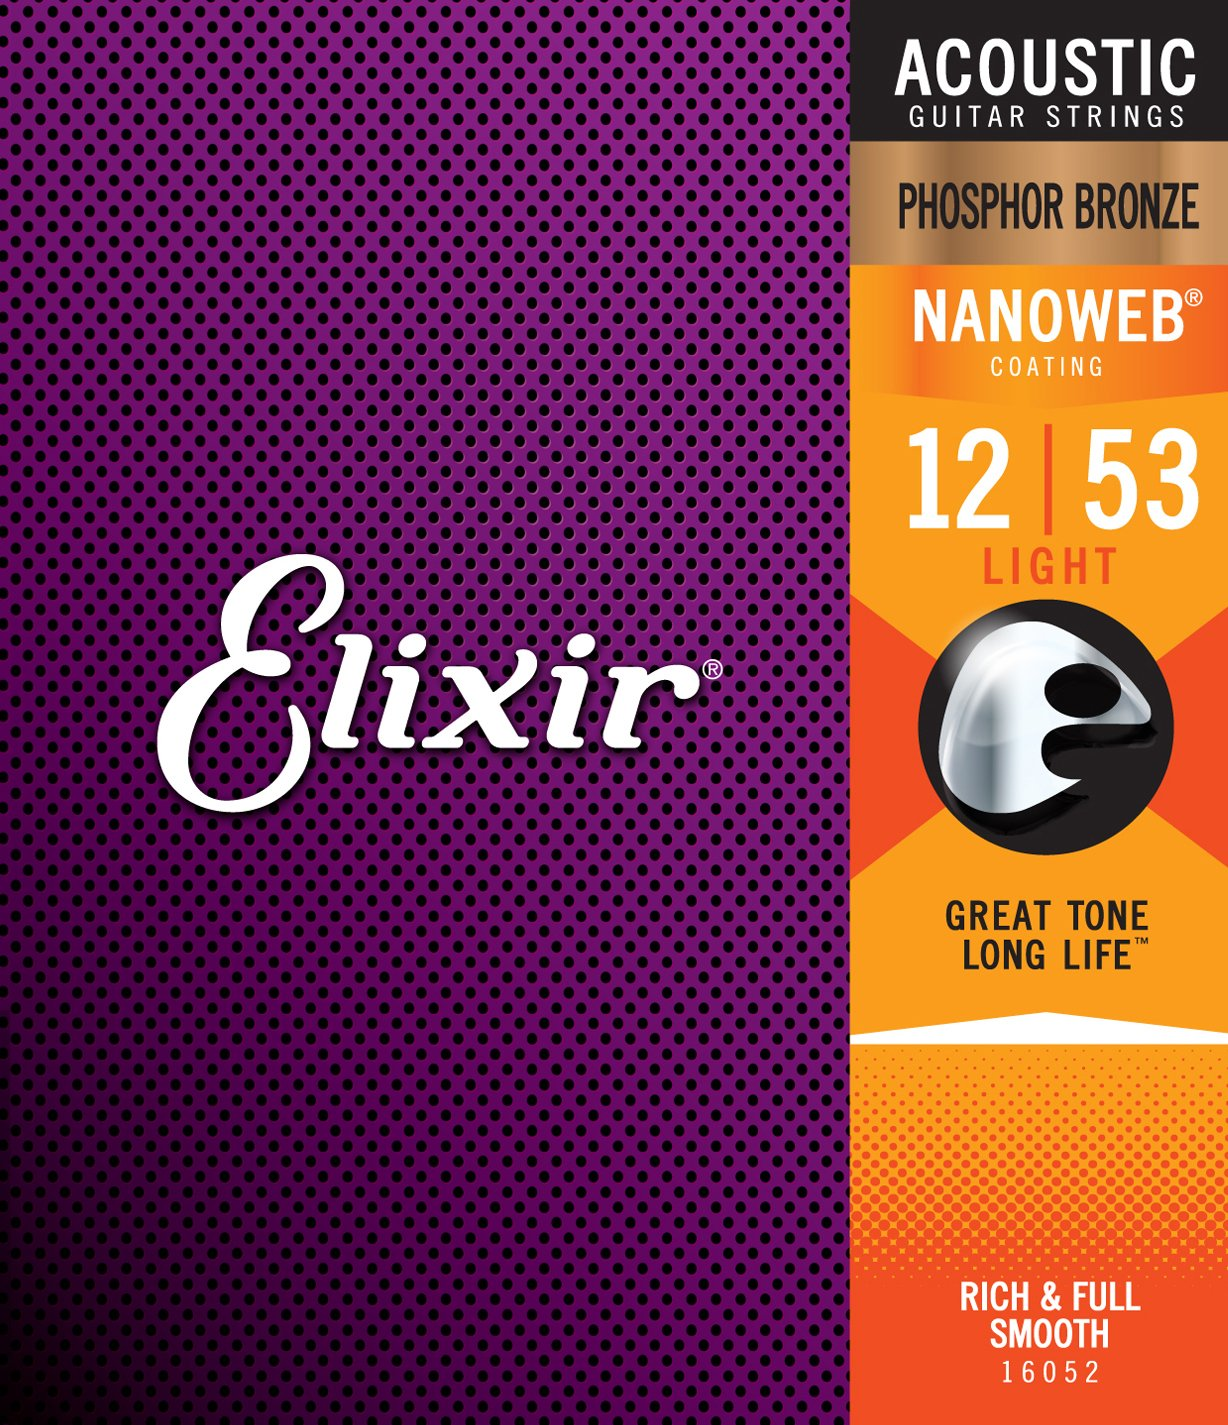 Elixir Phosphor Bronze 16052 Acoustic Guitar Strings, NANOWEB, Light, 12-53